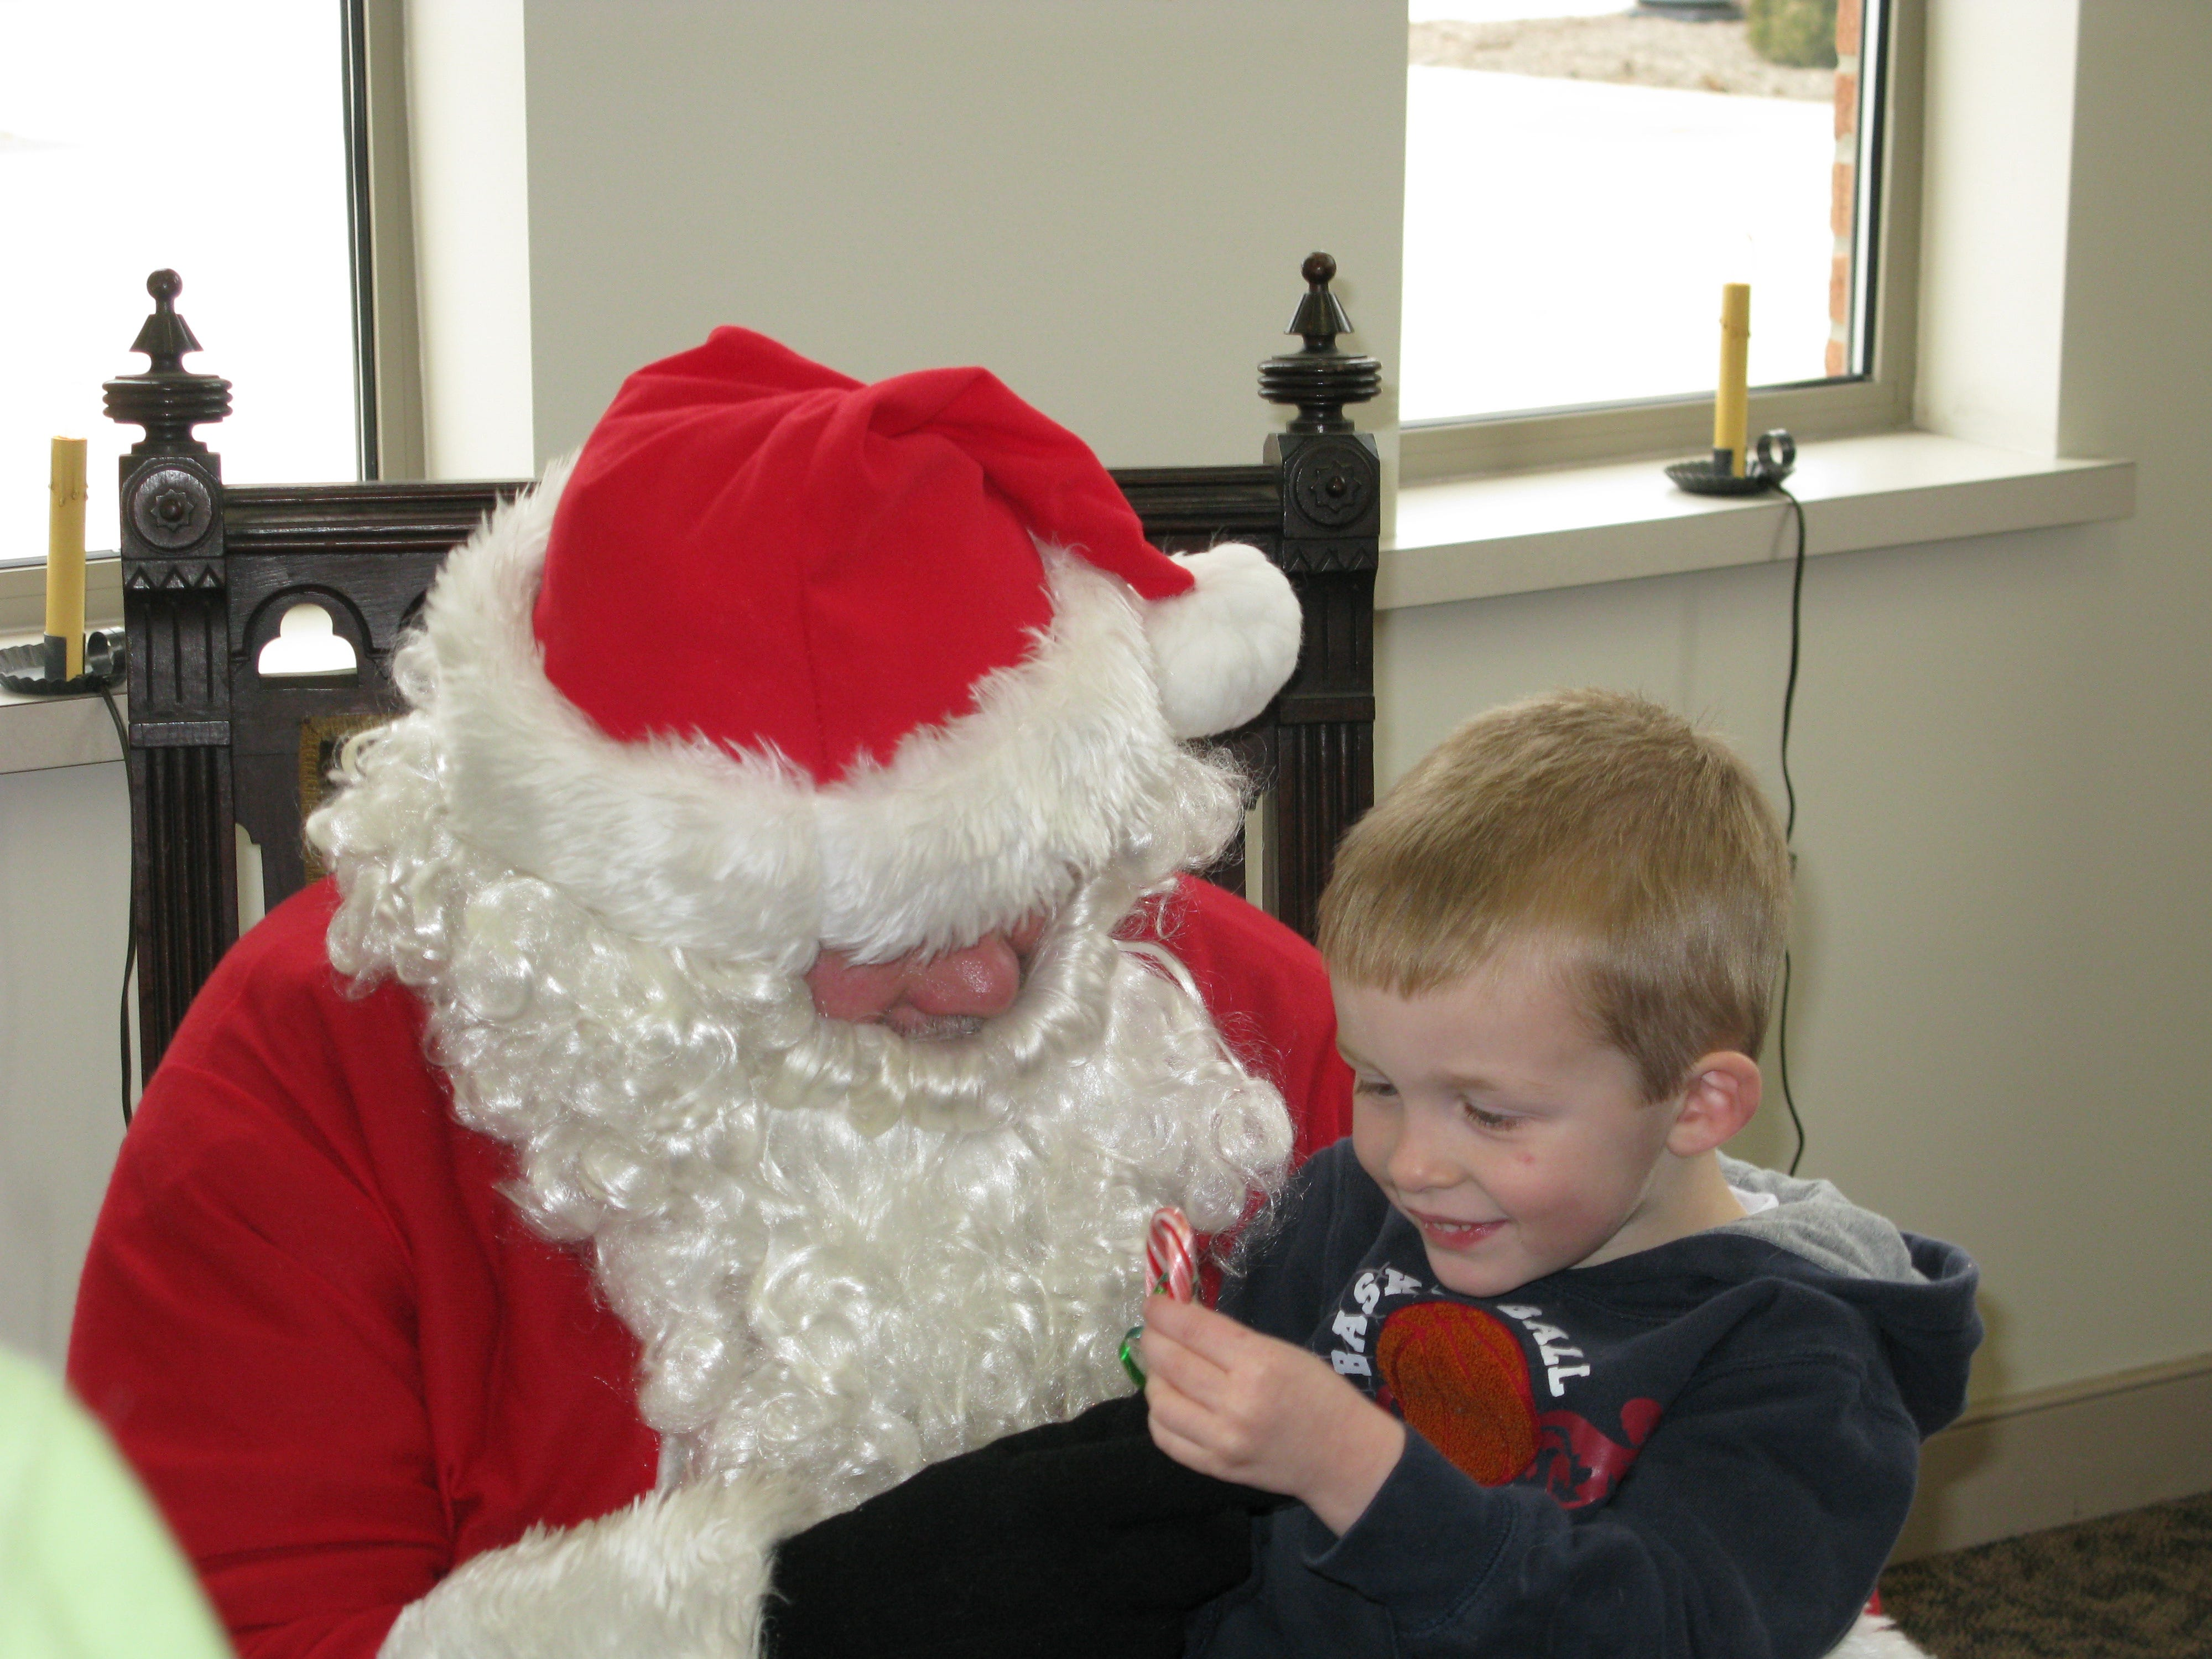 Logan Faust, 3, of Mansfield, examines his candy cane after consulting with Santa at First Citizens National Bank during Mansfield's Home for the Holidays in 2008.